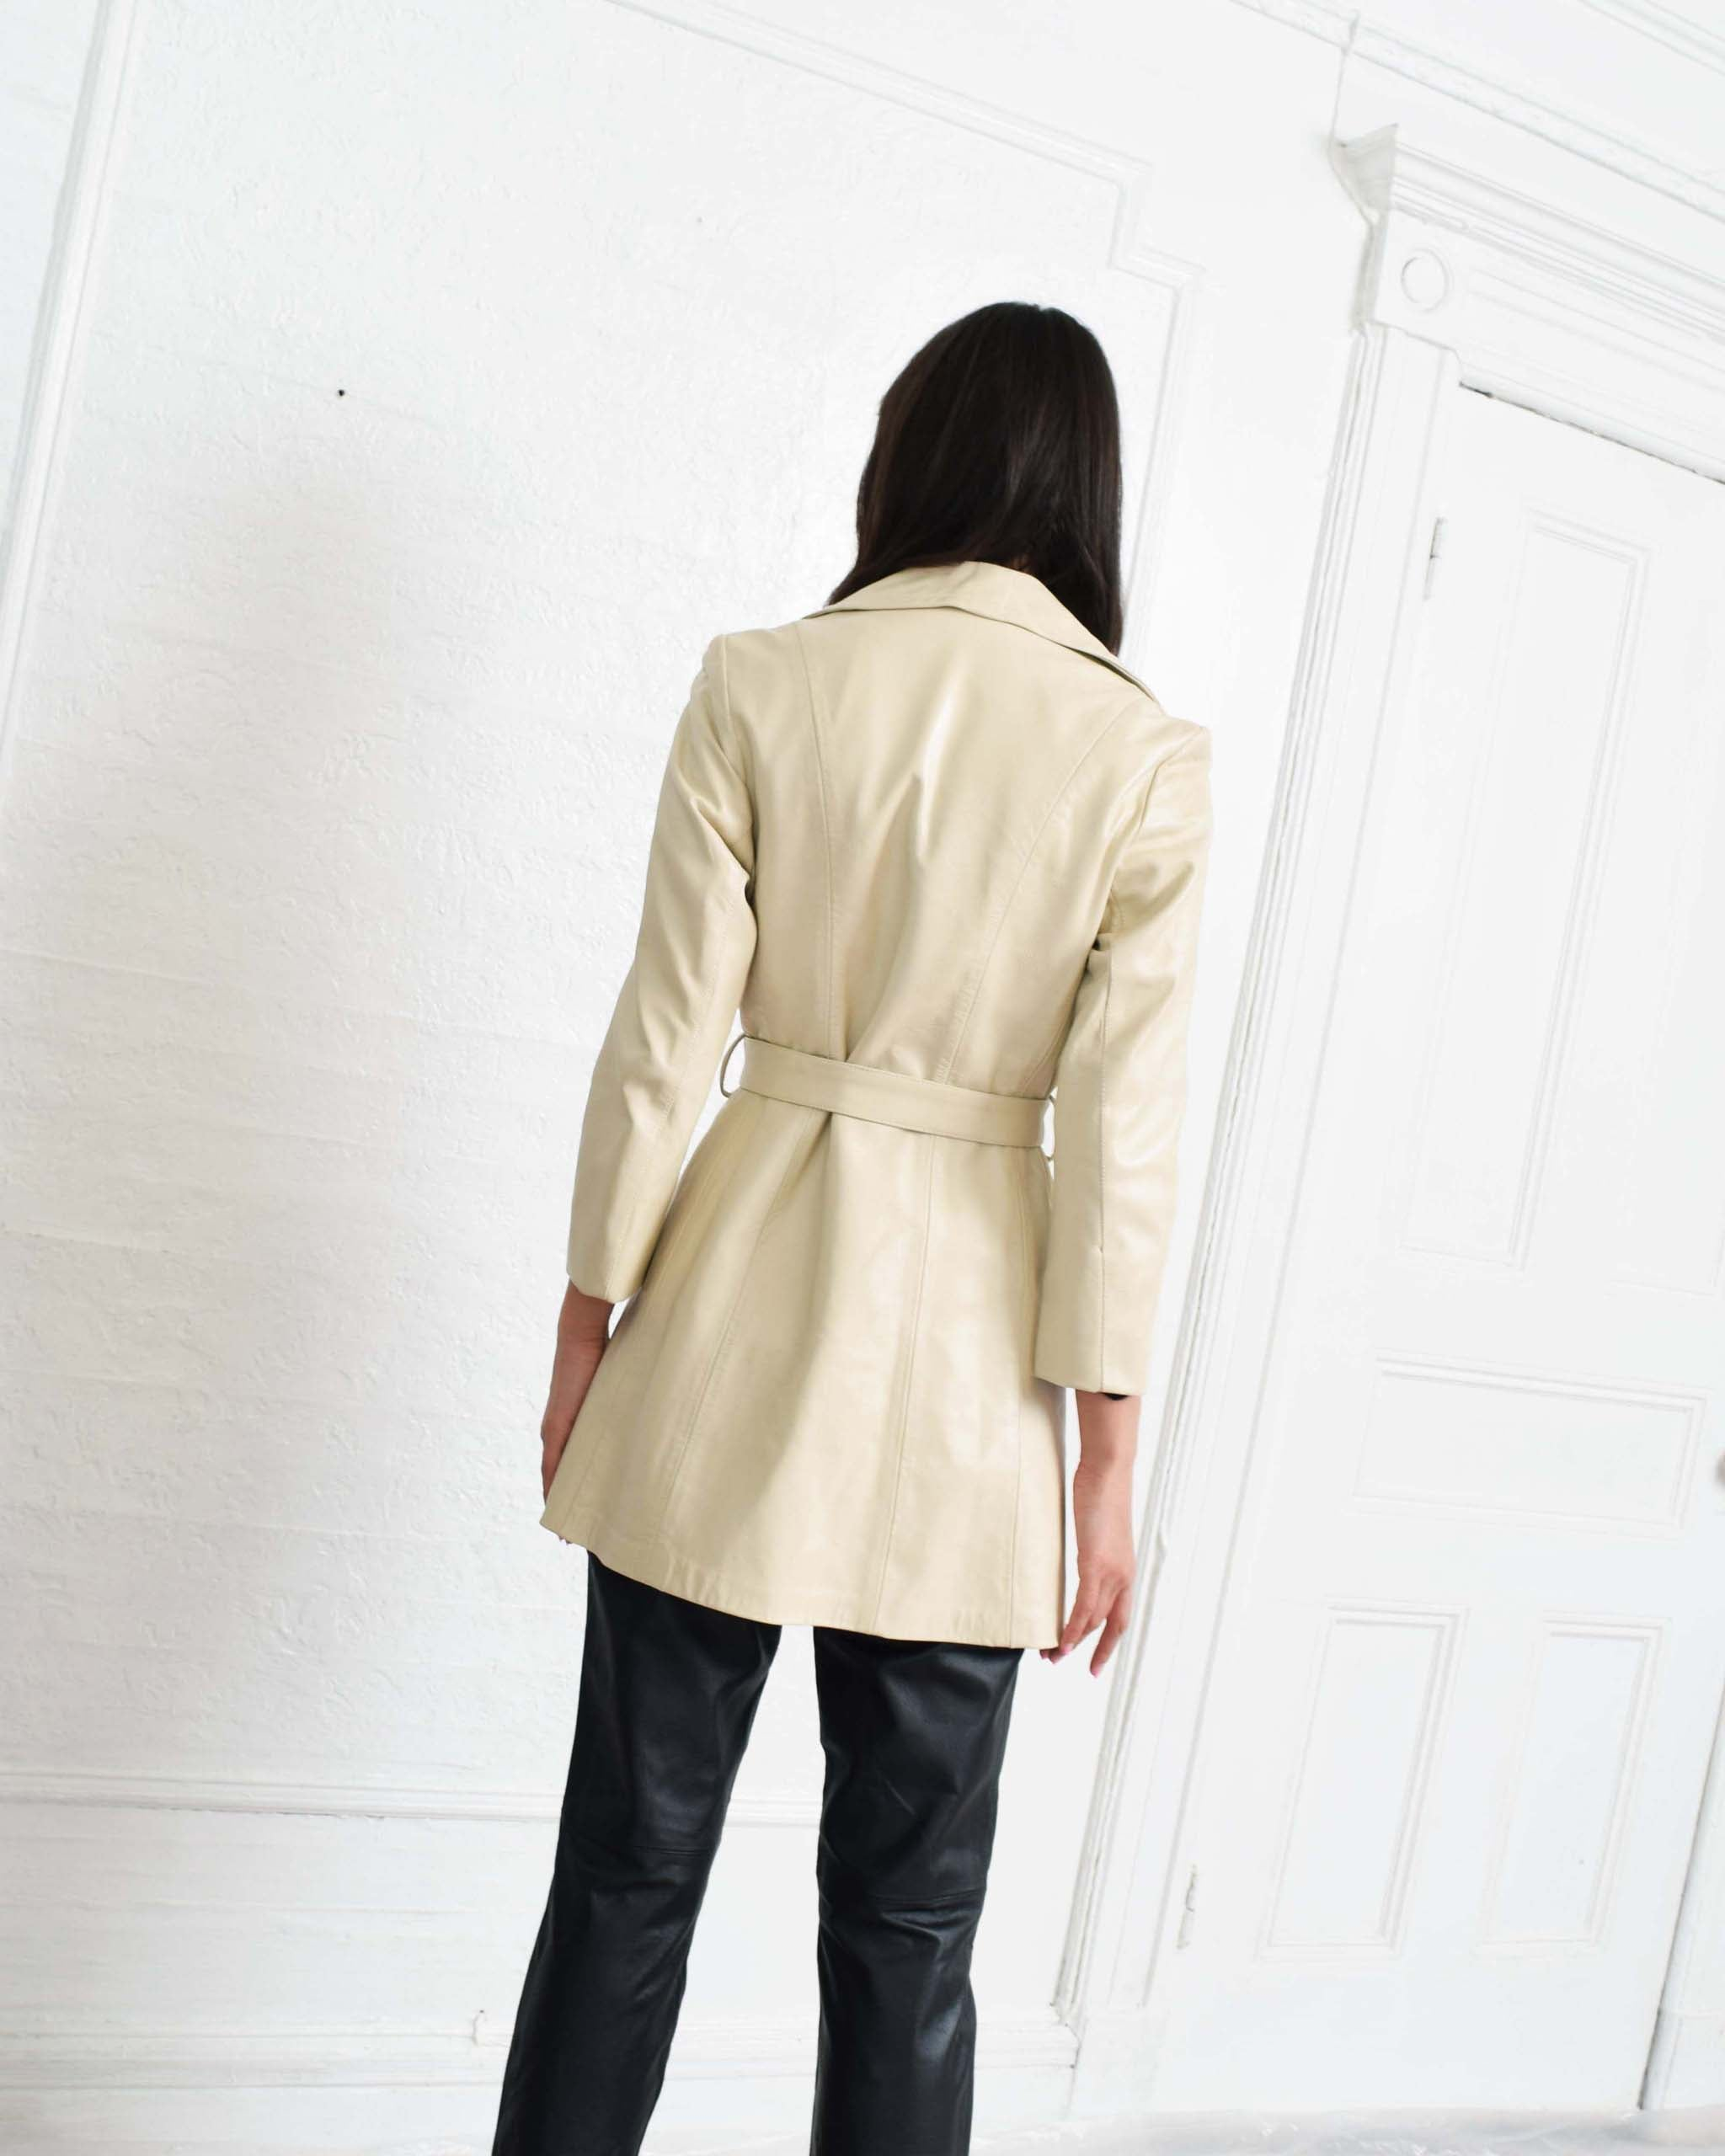 Vintage 1970s Ivory Leather Jacket